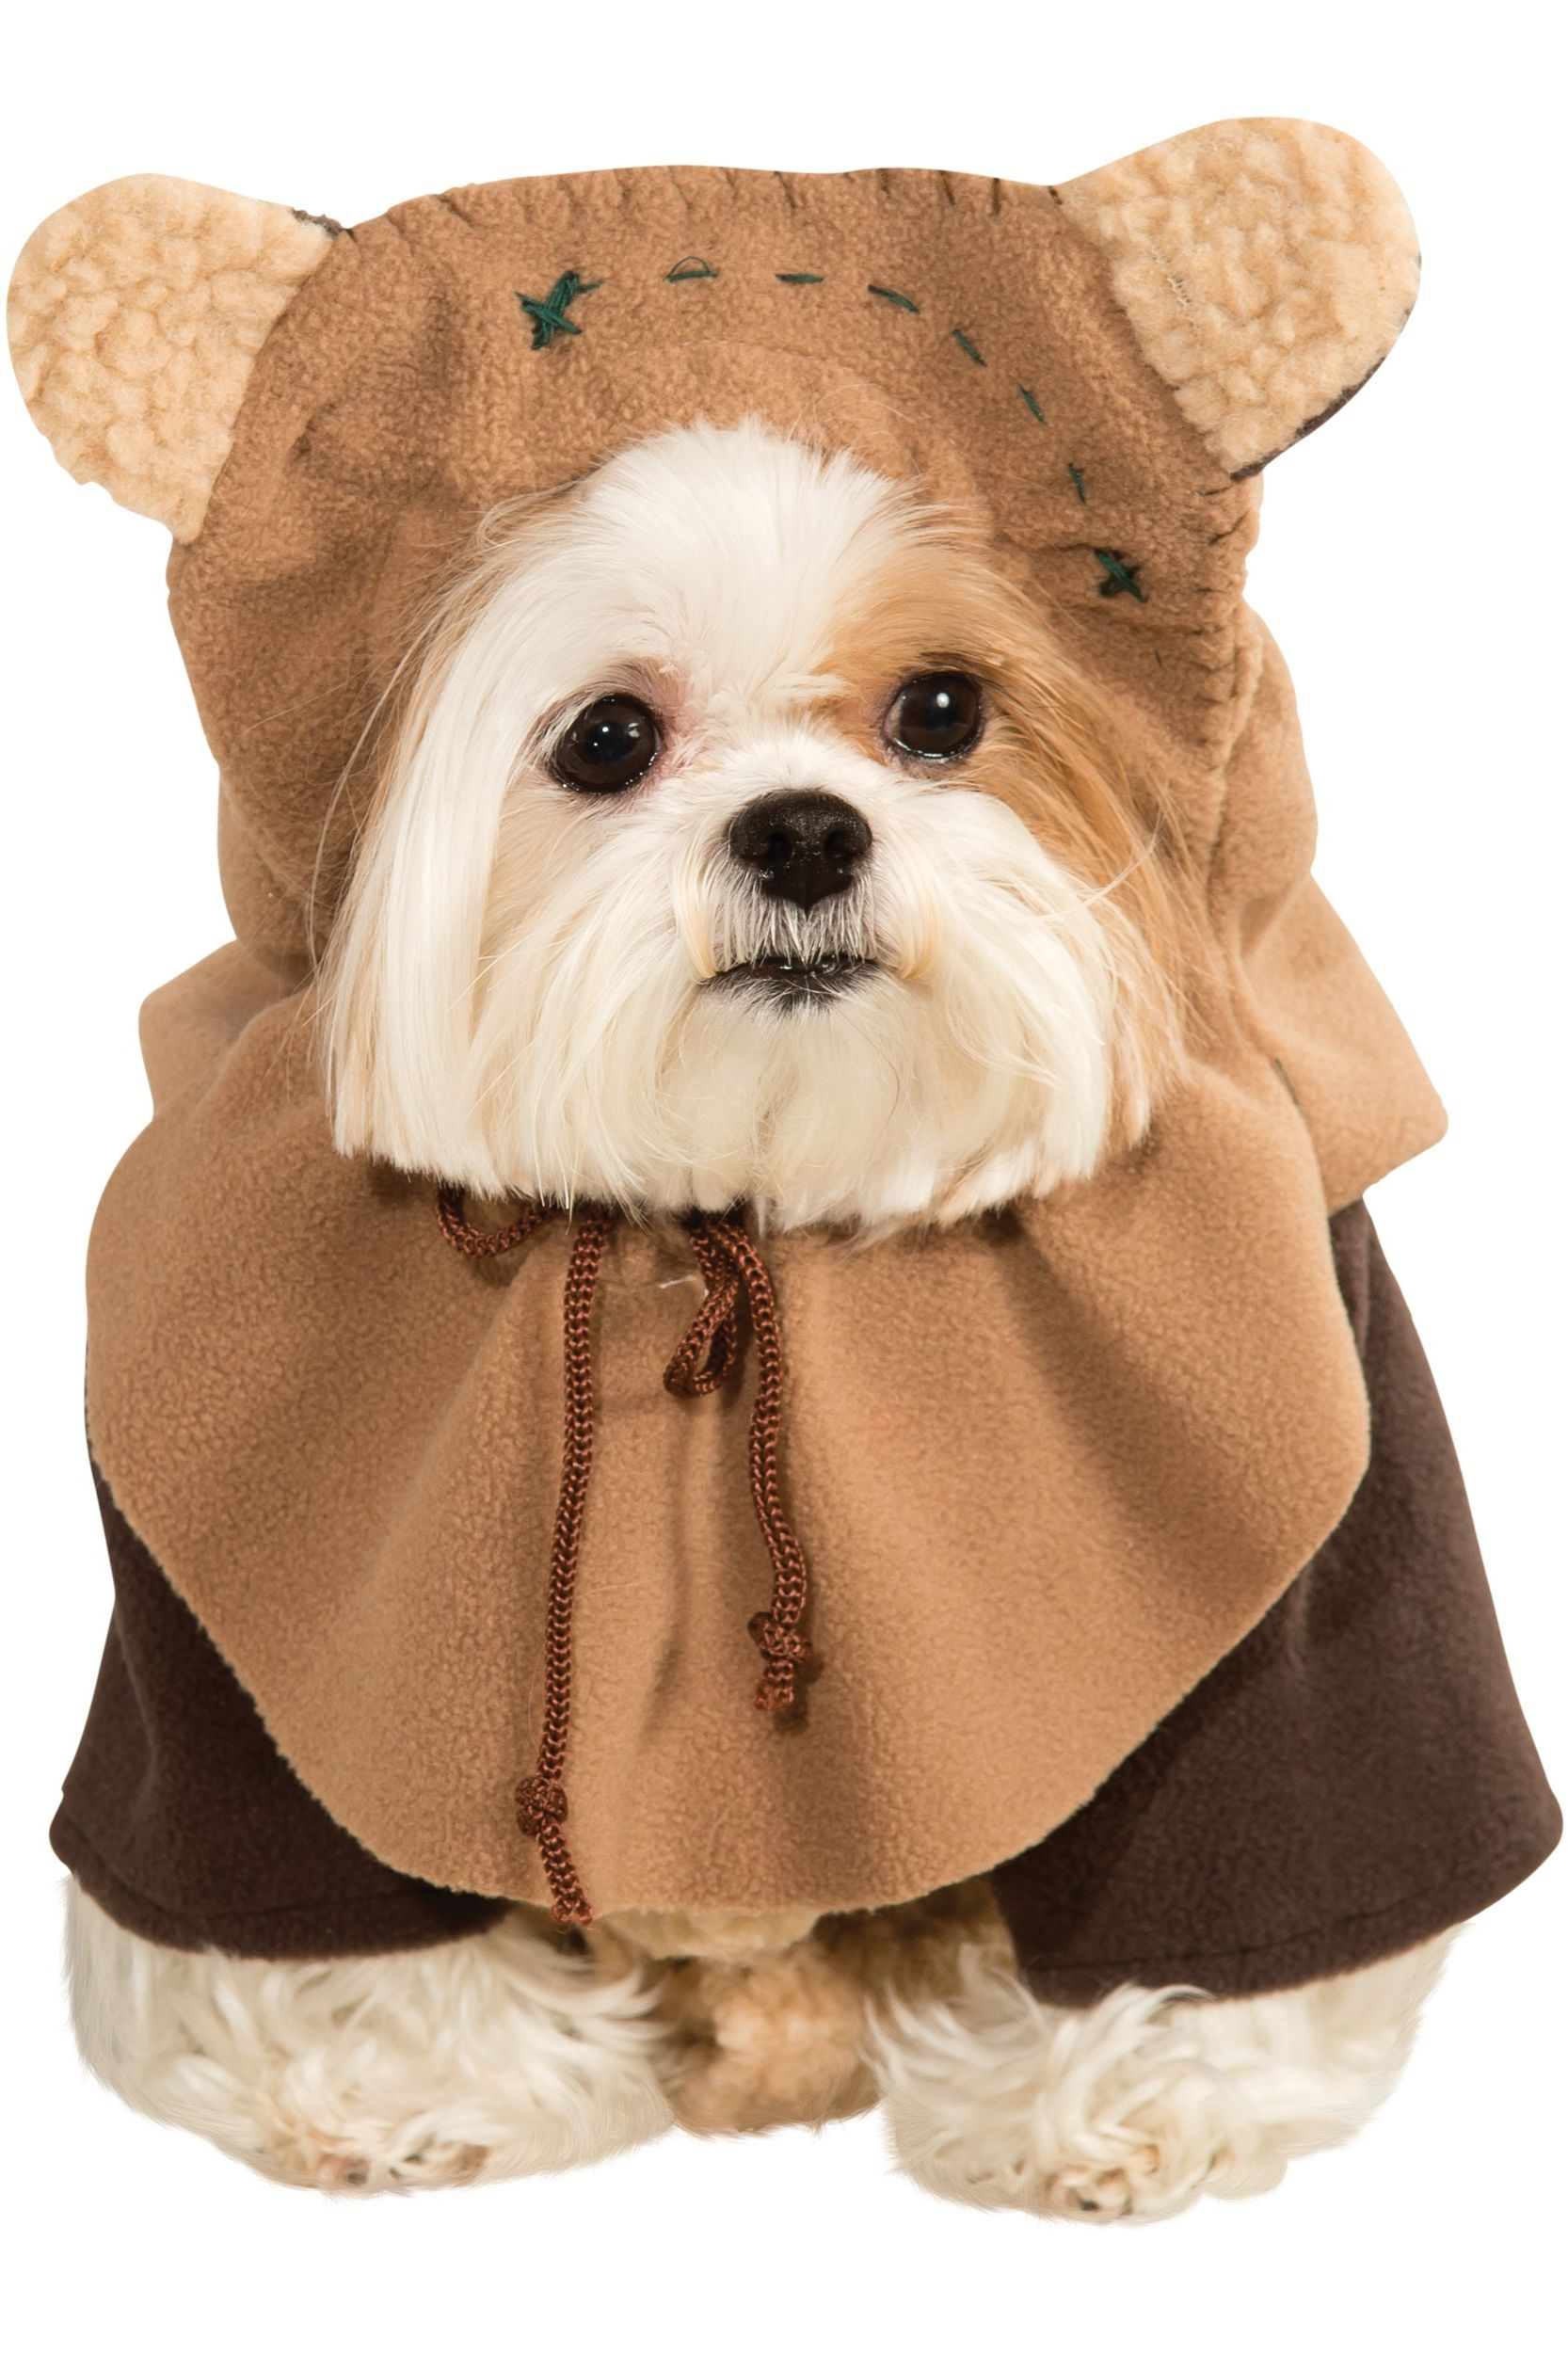 ewok from star wars costume for dogs